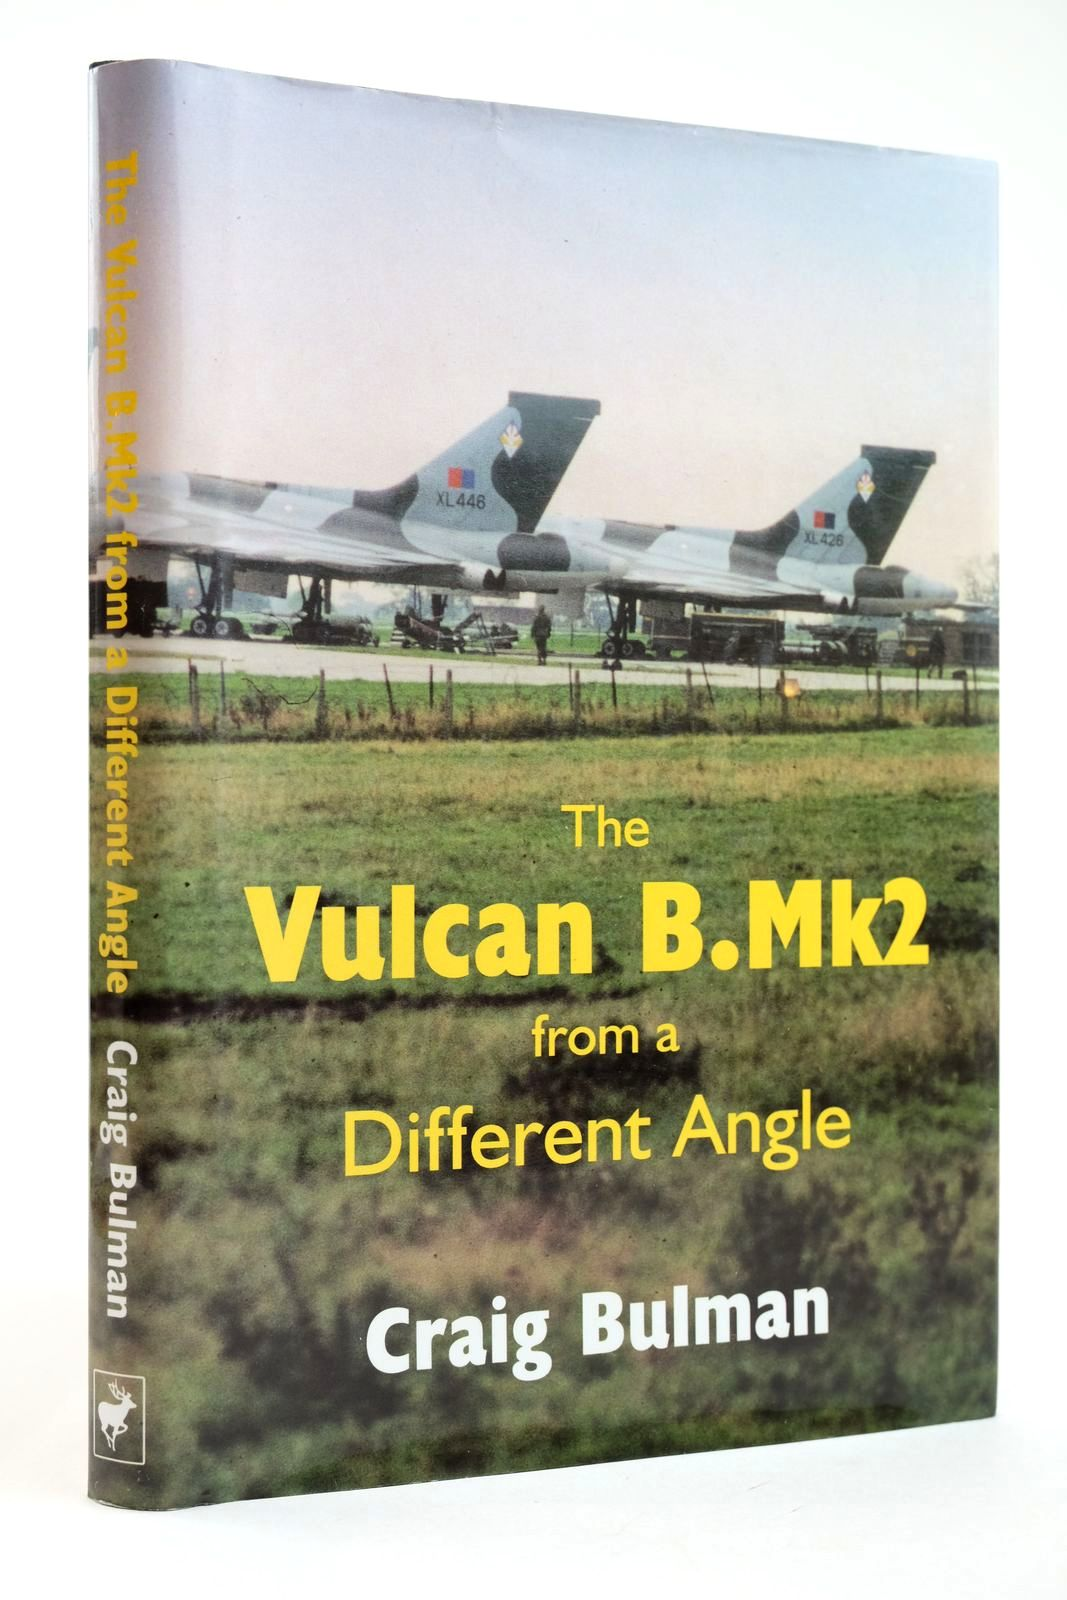 Photo of THE VULCAN B.MK2 FROM A DIFFERENT ANGLE written by Bulman, Craig published by Pentland Books Ltd (STOCK CODE: 2132184)  for sale by Stella & Rose's Books